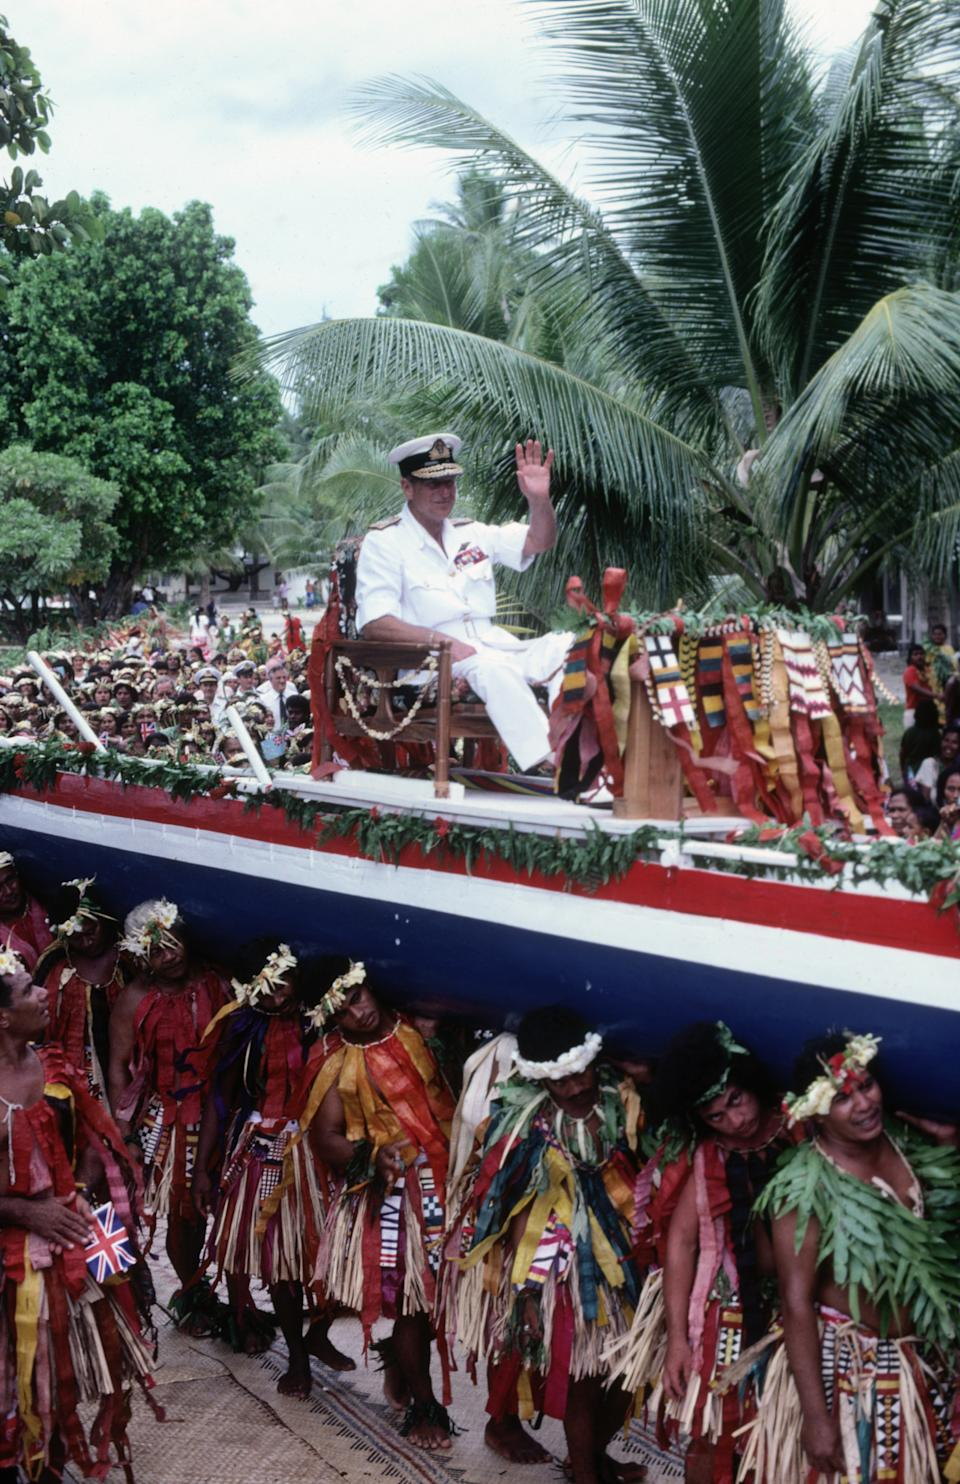 TUVALU - OCTOBER 26:  Prince Philip the Duke of Edinburgh is carried aloft on a canoe through the streets of the Pacific island of Tuvalu on October 26, 1982 during the Royal Tour of the South Pacific. (Photo by David Levenson/Getty Images)